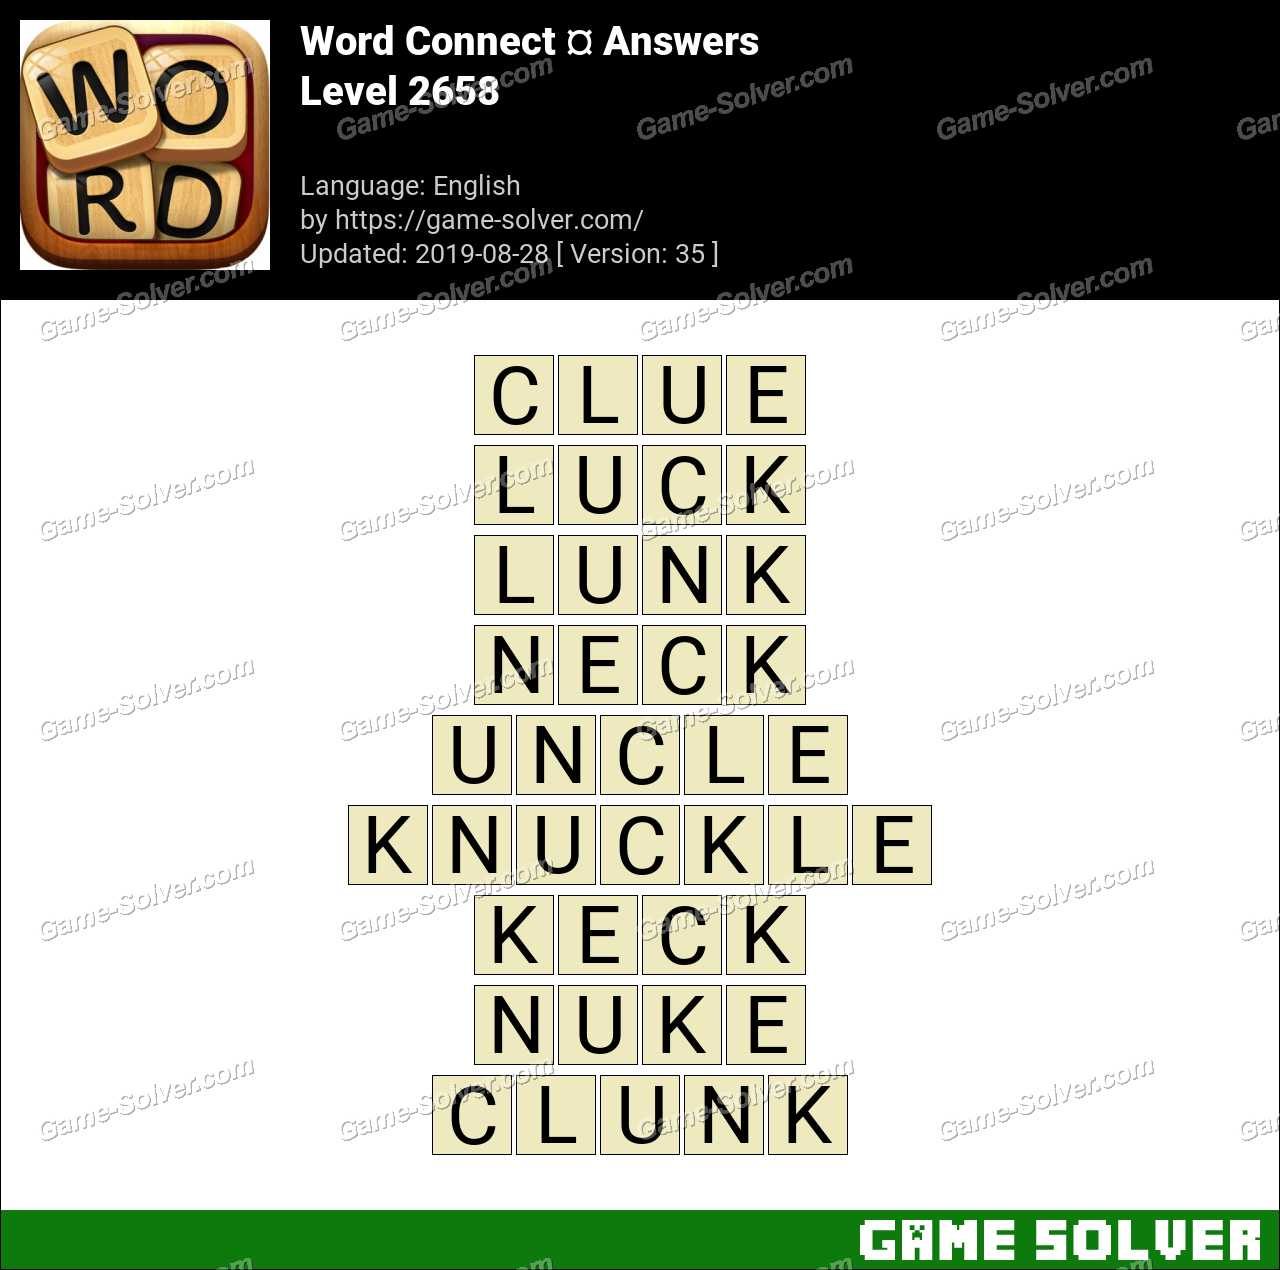 Word Connect Level 2658 Answers